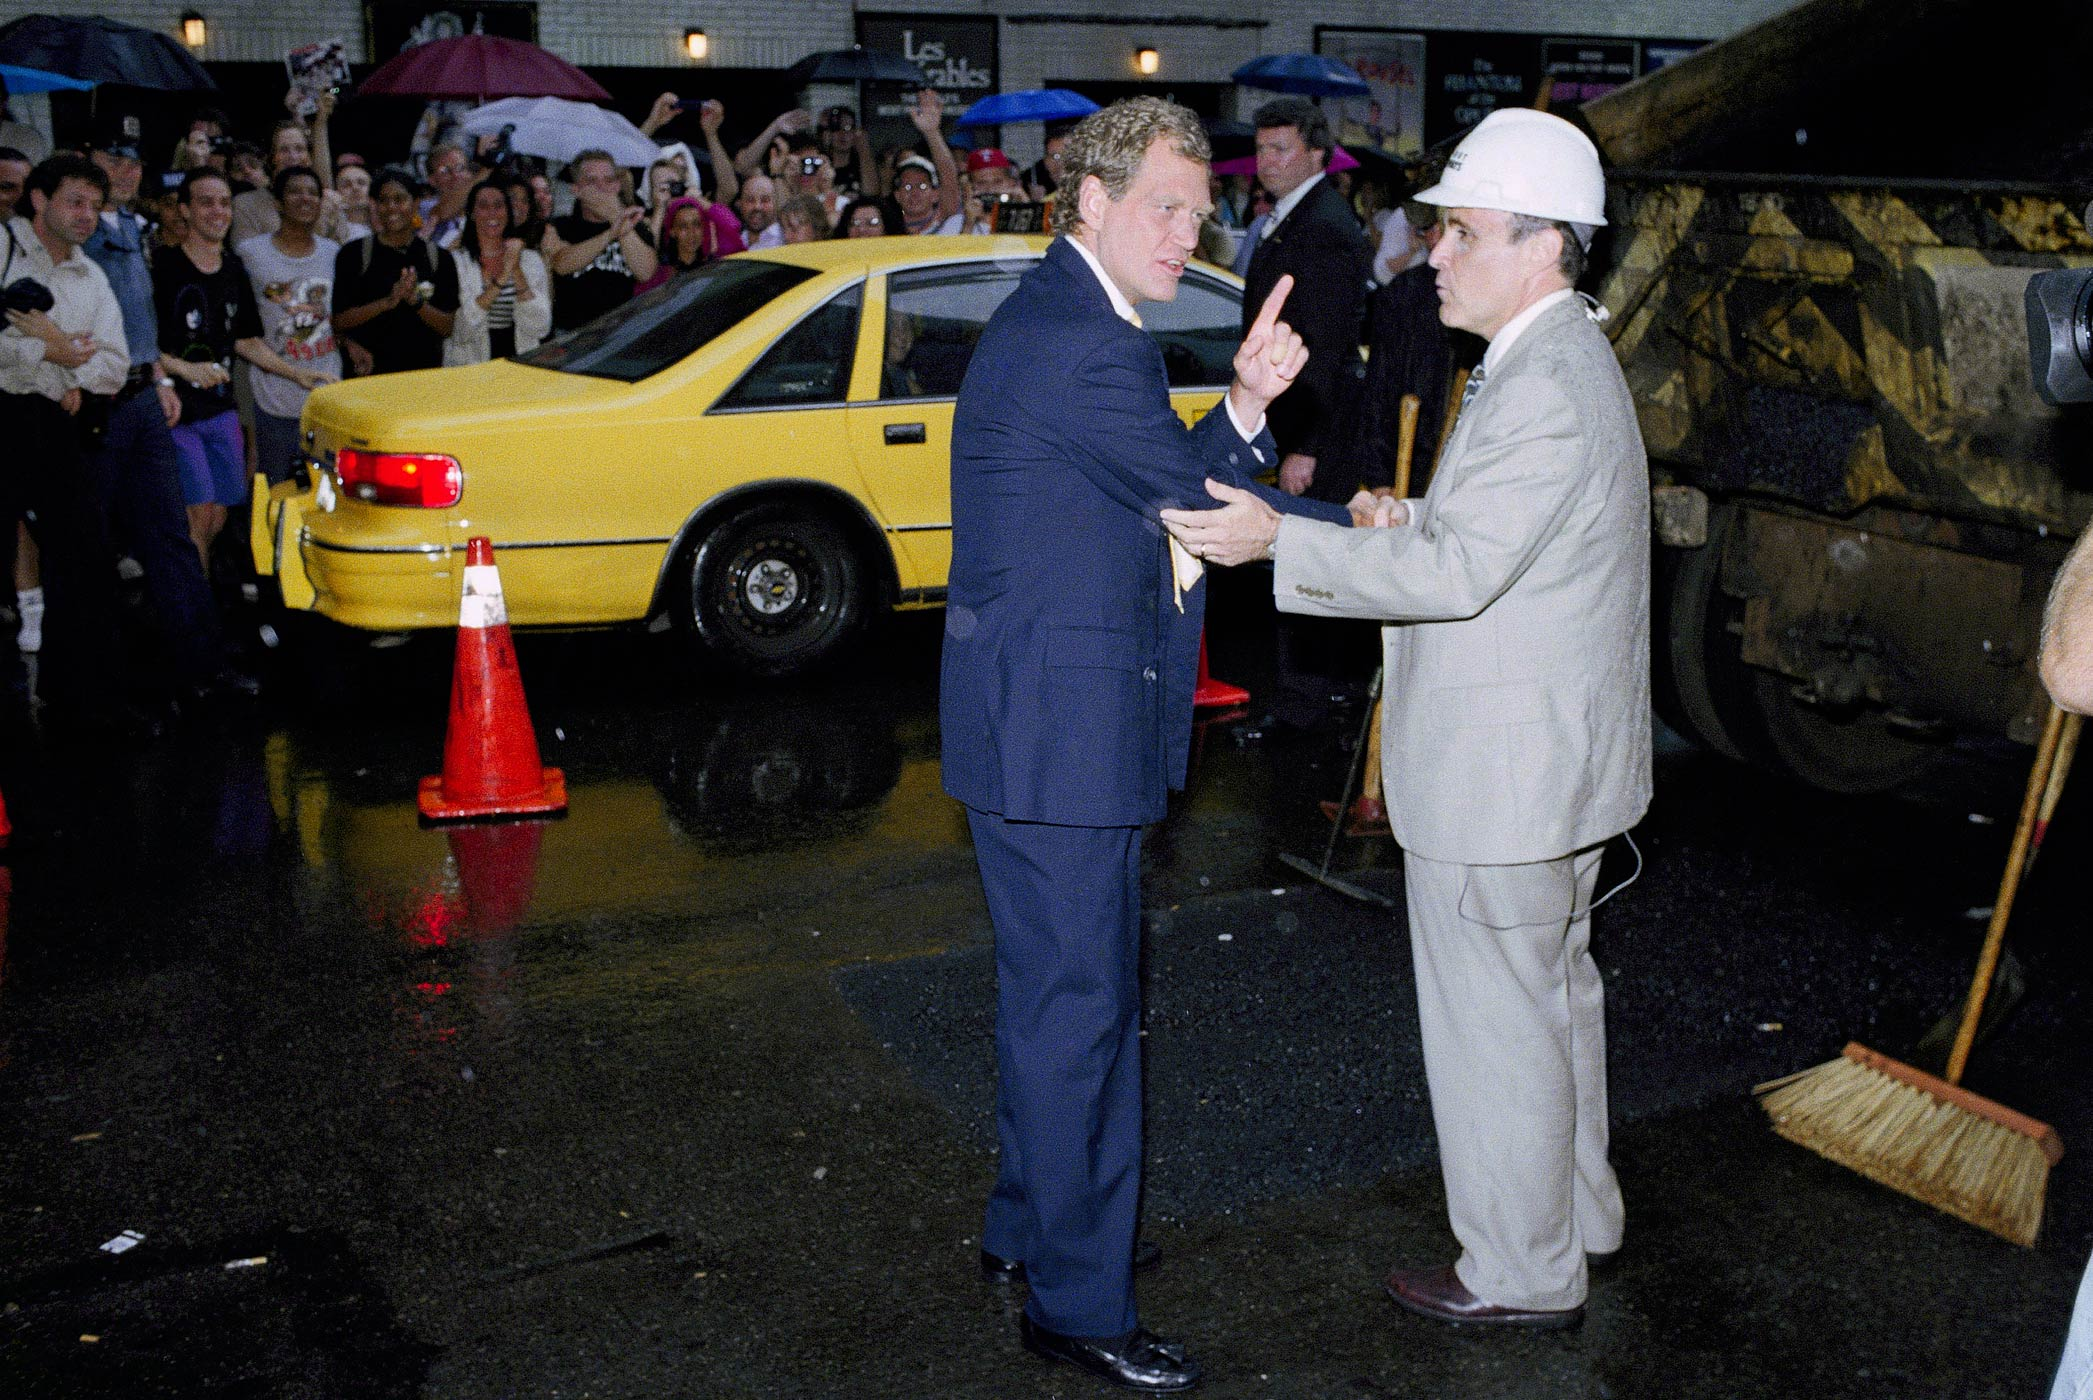 David Letterman greets New York City Mayor Rudolph Giuliani as he helps fill a large pothole on 53rd Street outside the Ed Sullivan Theater during a taping of the Late Show With David Letterman on July 26, 1994 in New York.